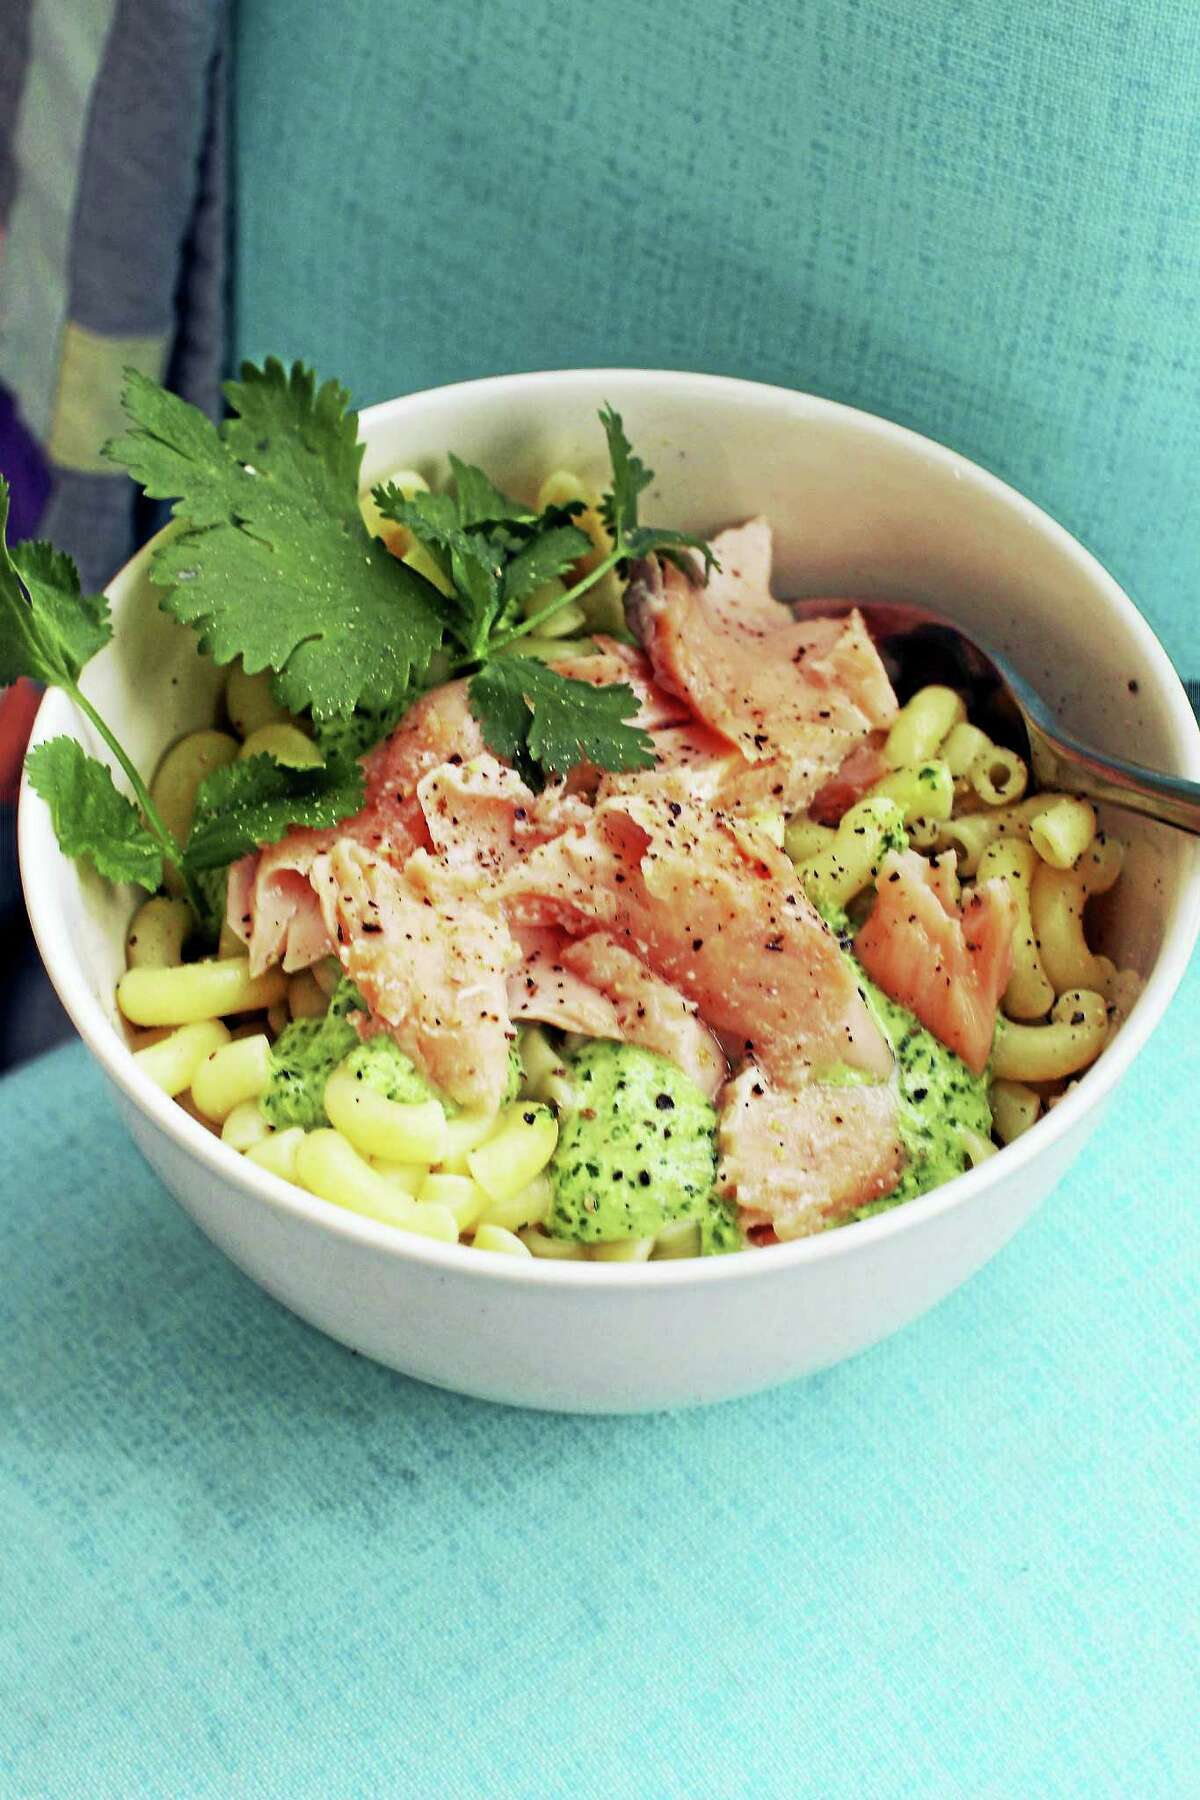 This delicious spring dish is easy to assemble and travels well, making it perfect for packed lunches and picnics. It also can be prepped in advance by poaching the fish and cooking the pasta the night before.